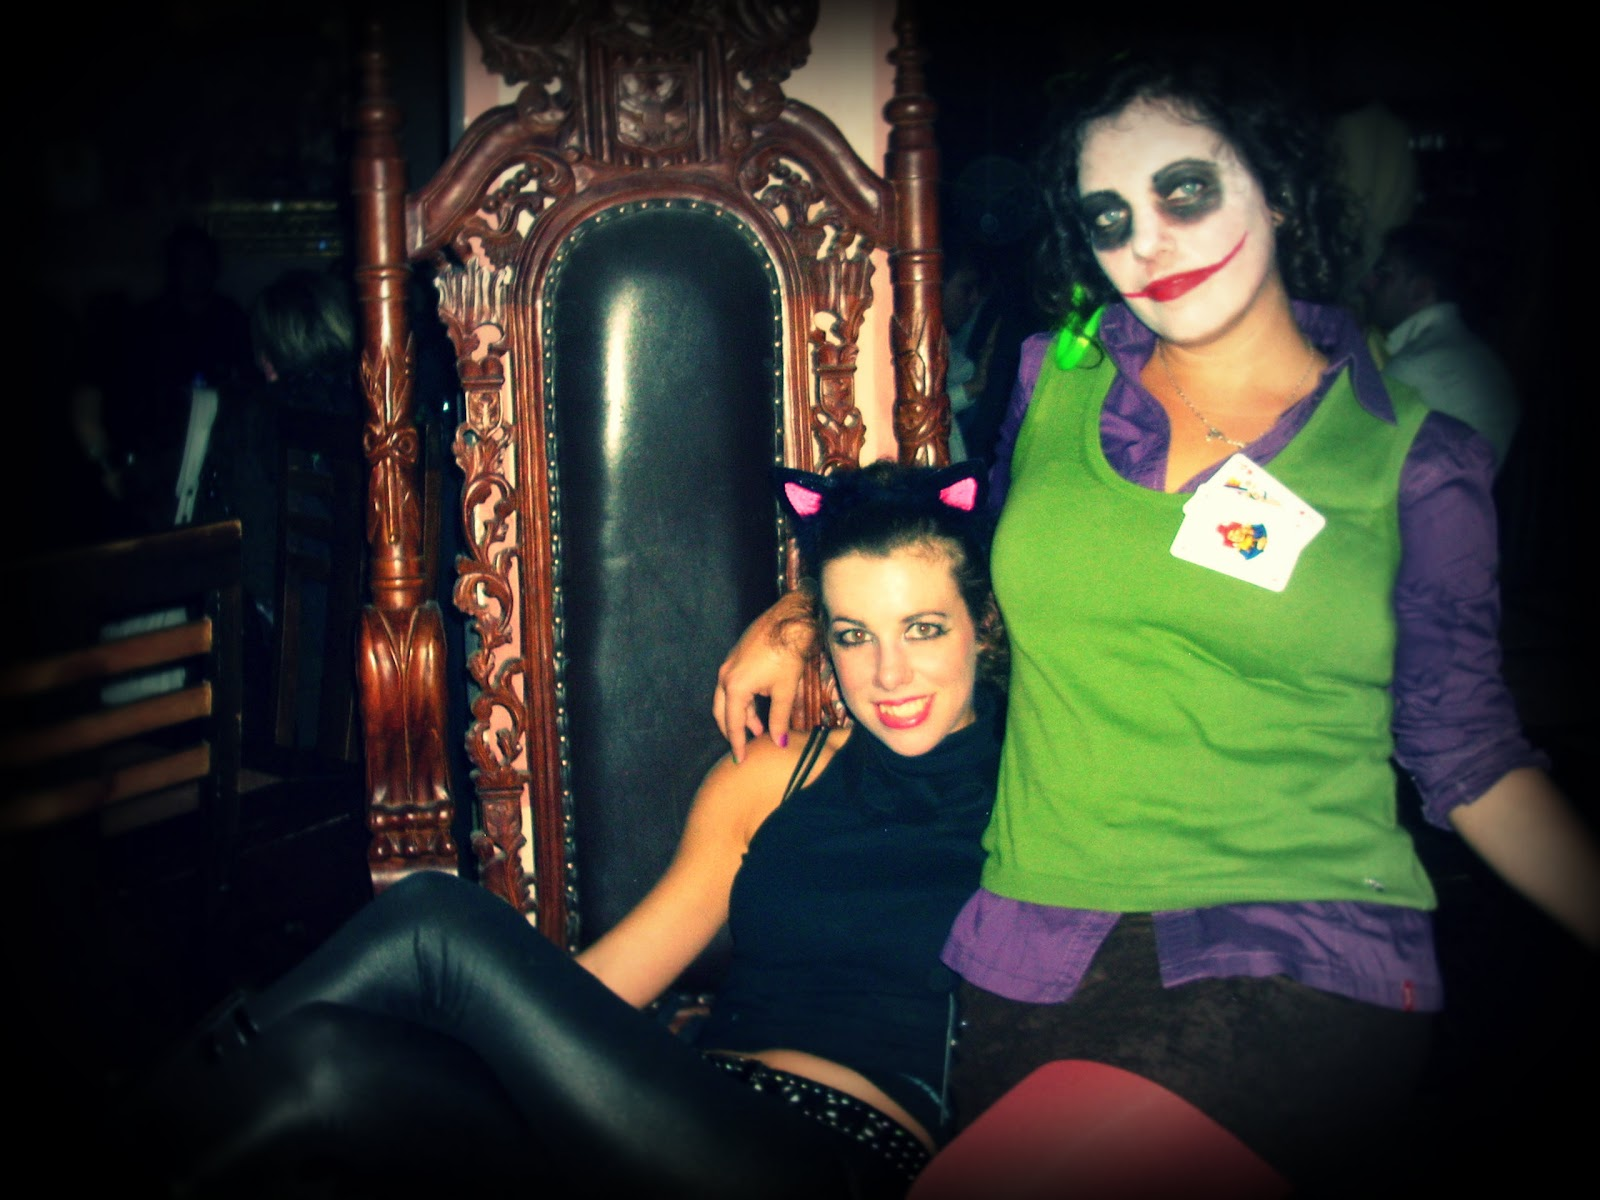 http://s-fashion-avenue.blogspot.it/2012/11/halloween-party.html